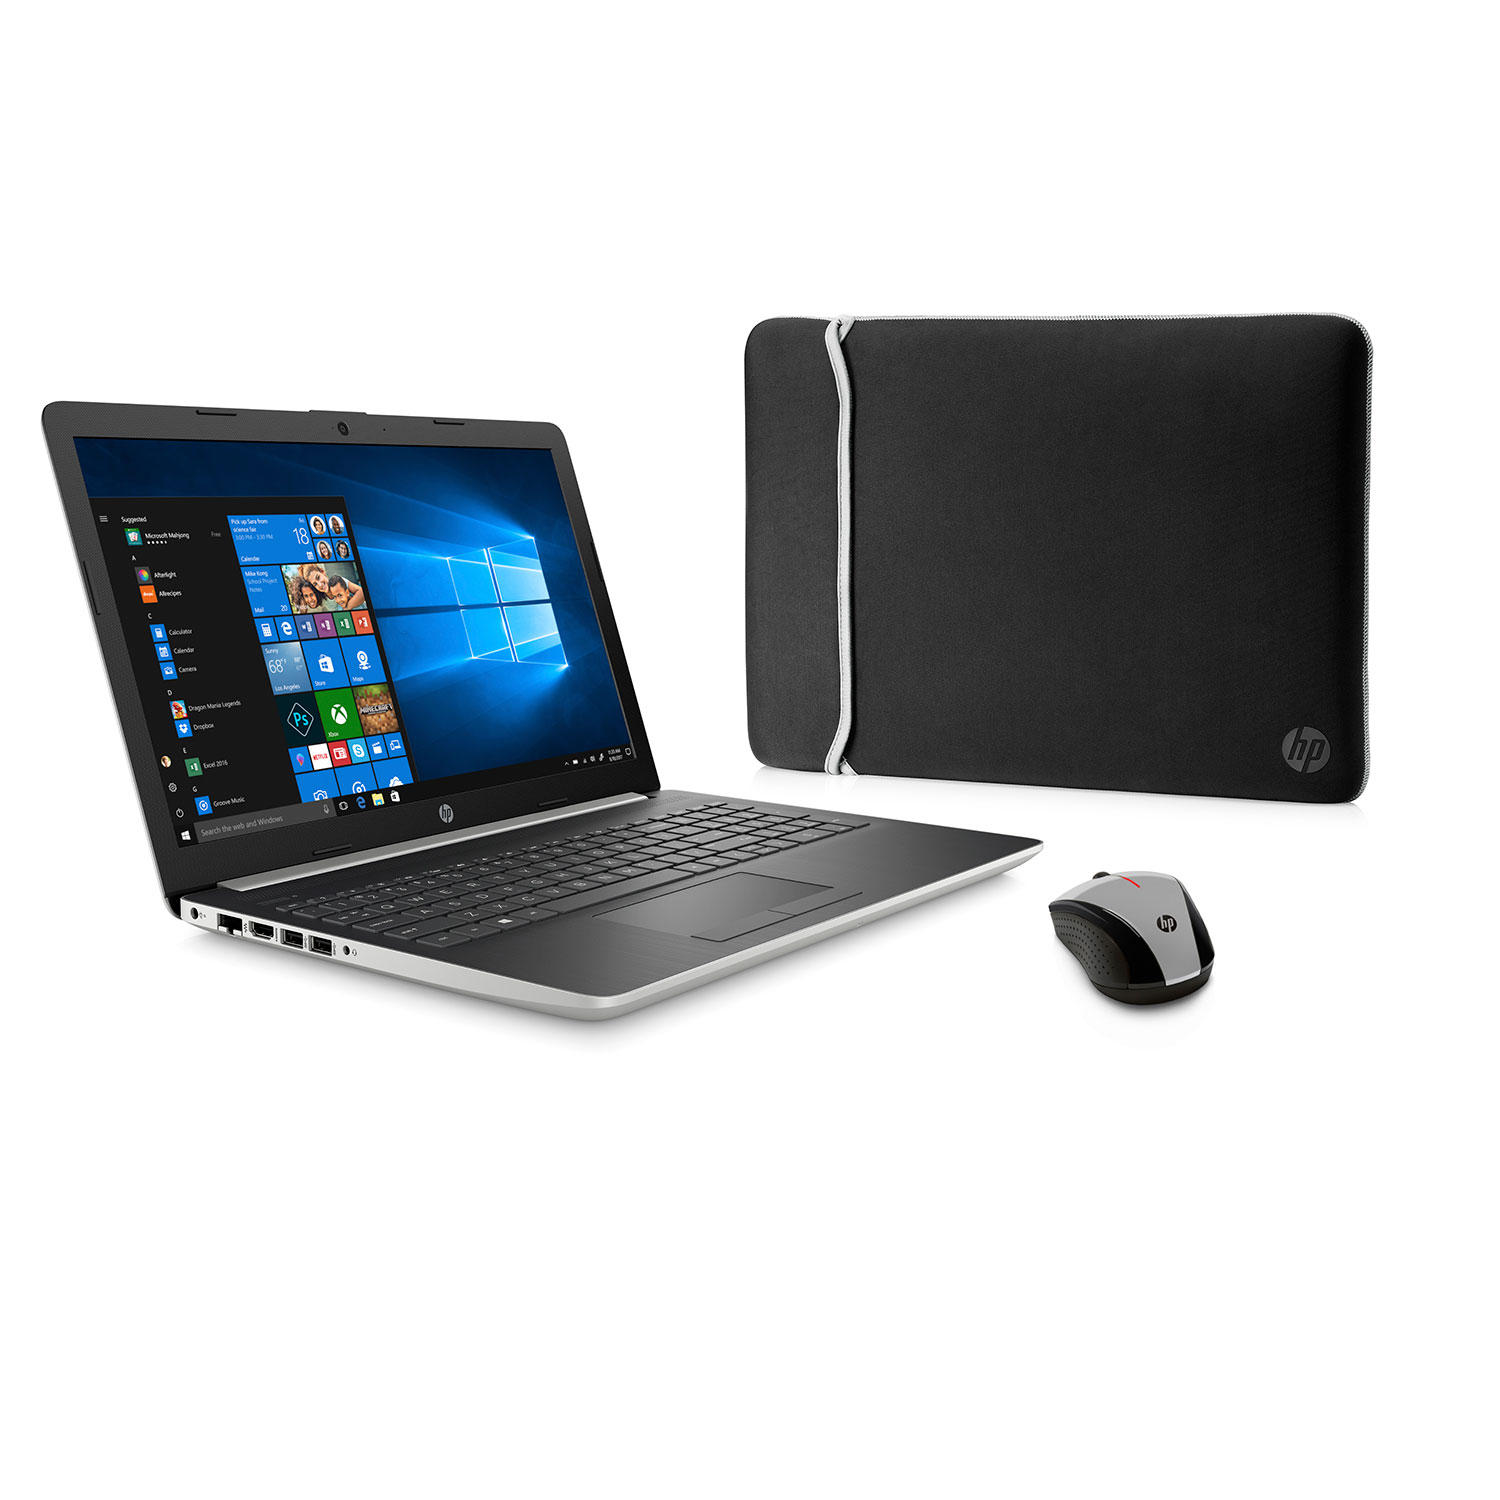 HP 15-db1973cl 15.6″ Touch Laptop with AMD Ryzen 7, 8GB RAM, 512GB SSD + 2 Year Warranty Care Pack with Accidental Damage Protection